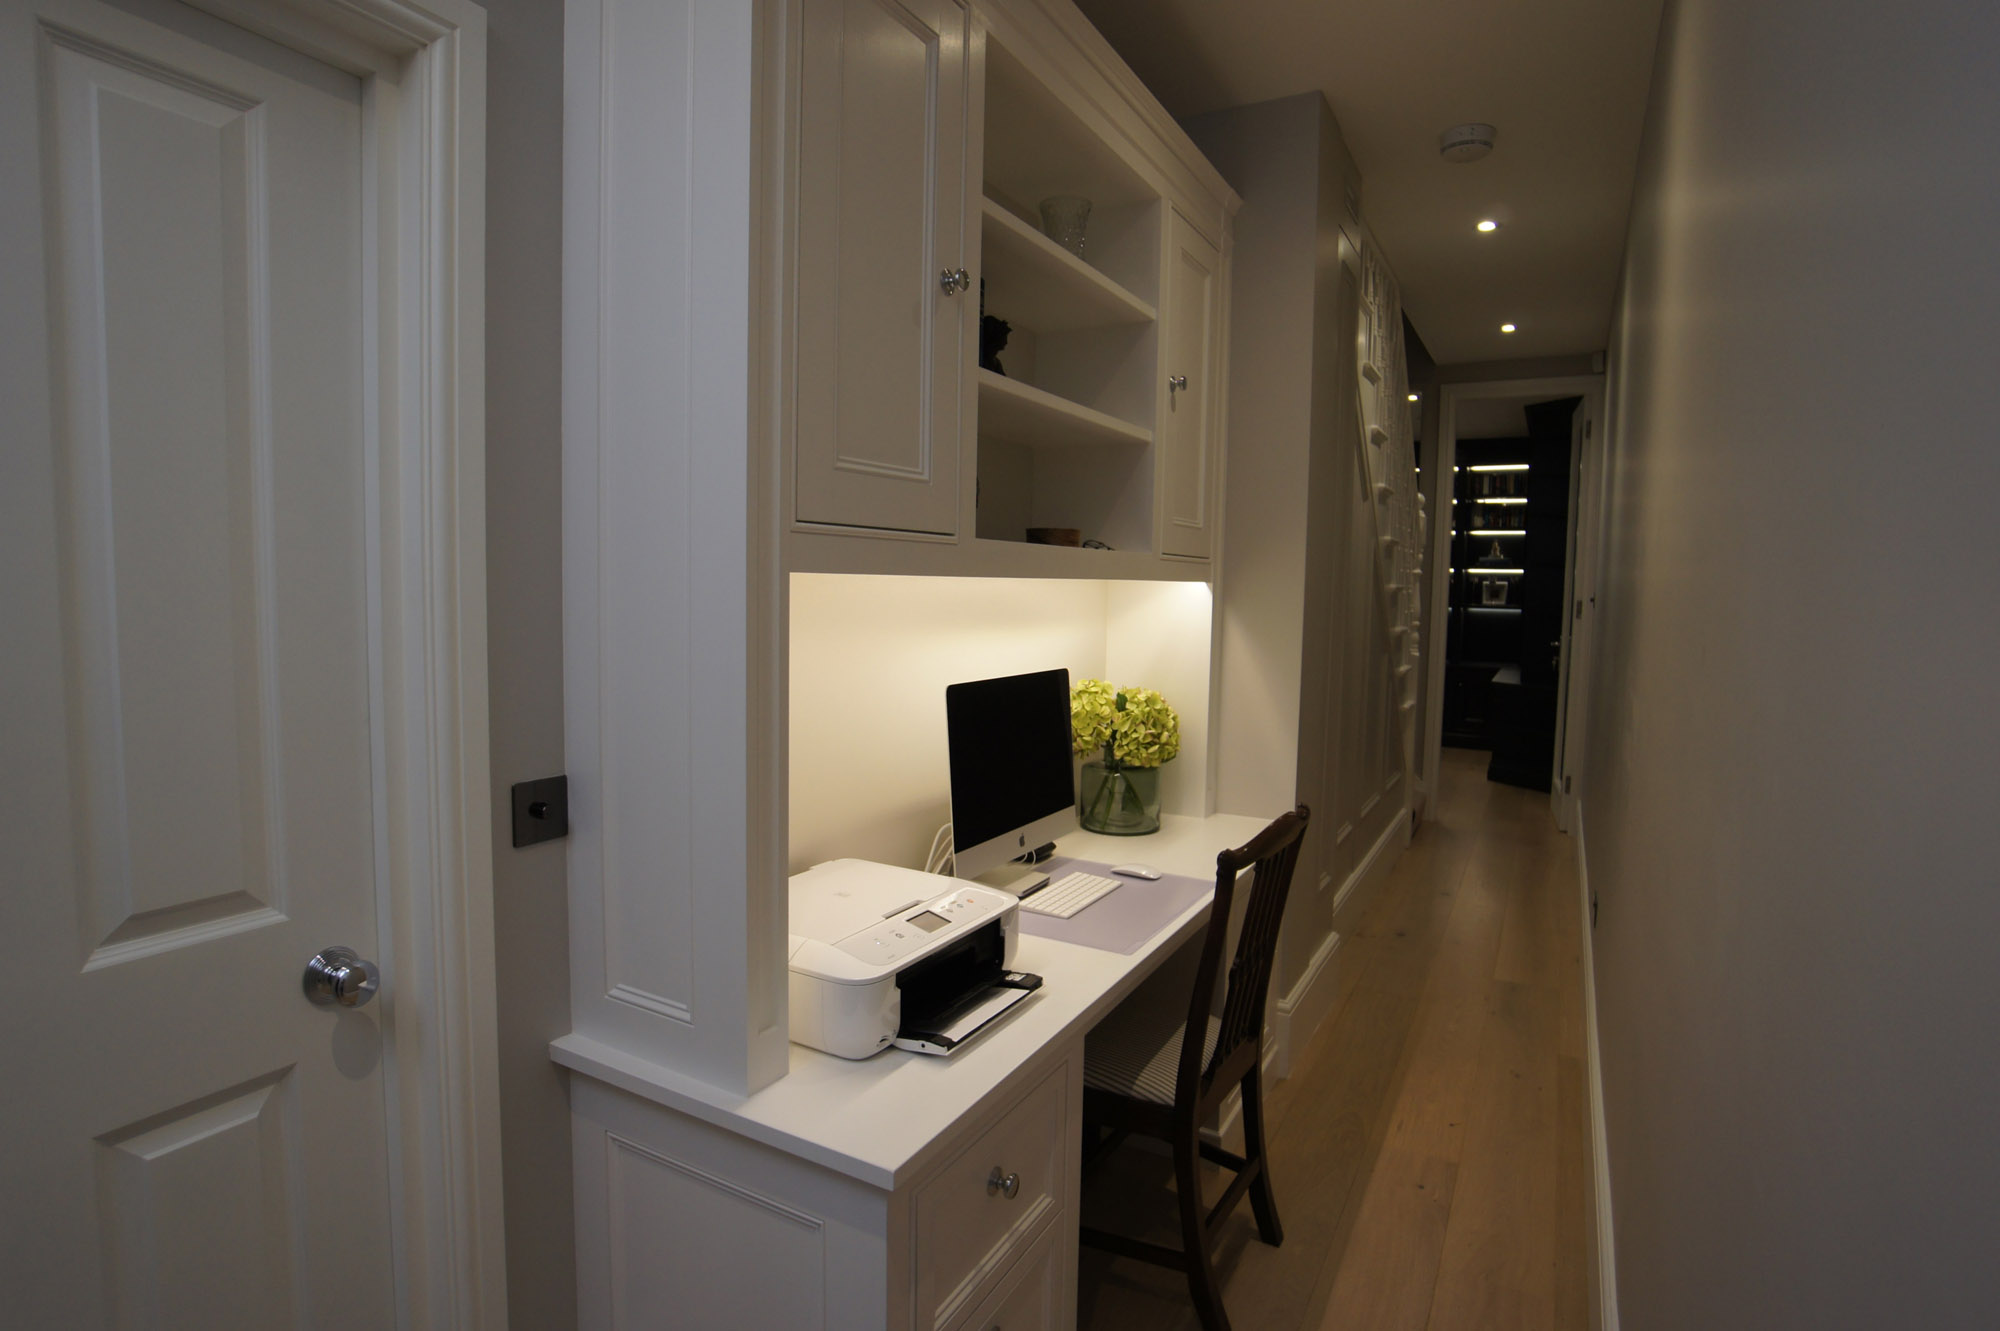 GW-Cabinetry-Interior-Solutions-Storage-1.jpg